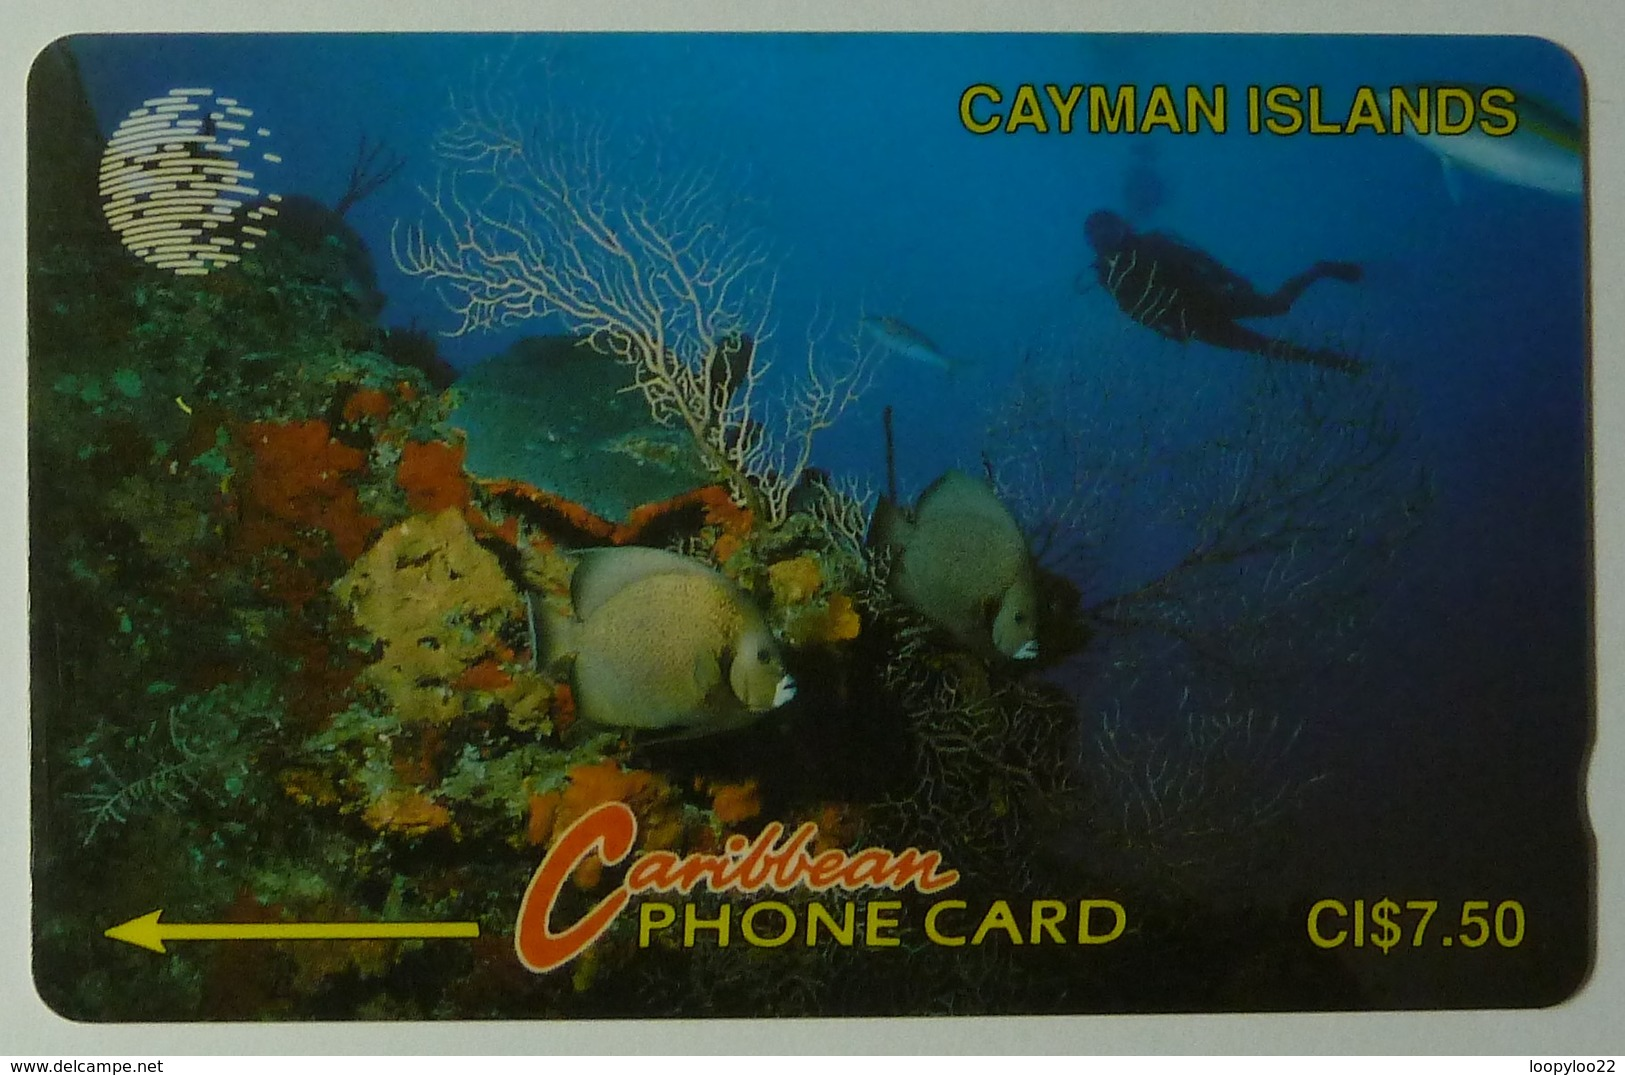 CAYMAN ISLANDS - GPT - CAY-5A - Underwater - Diver - 5CCIA - $7.50 - Used - Cayman Islands